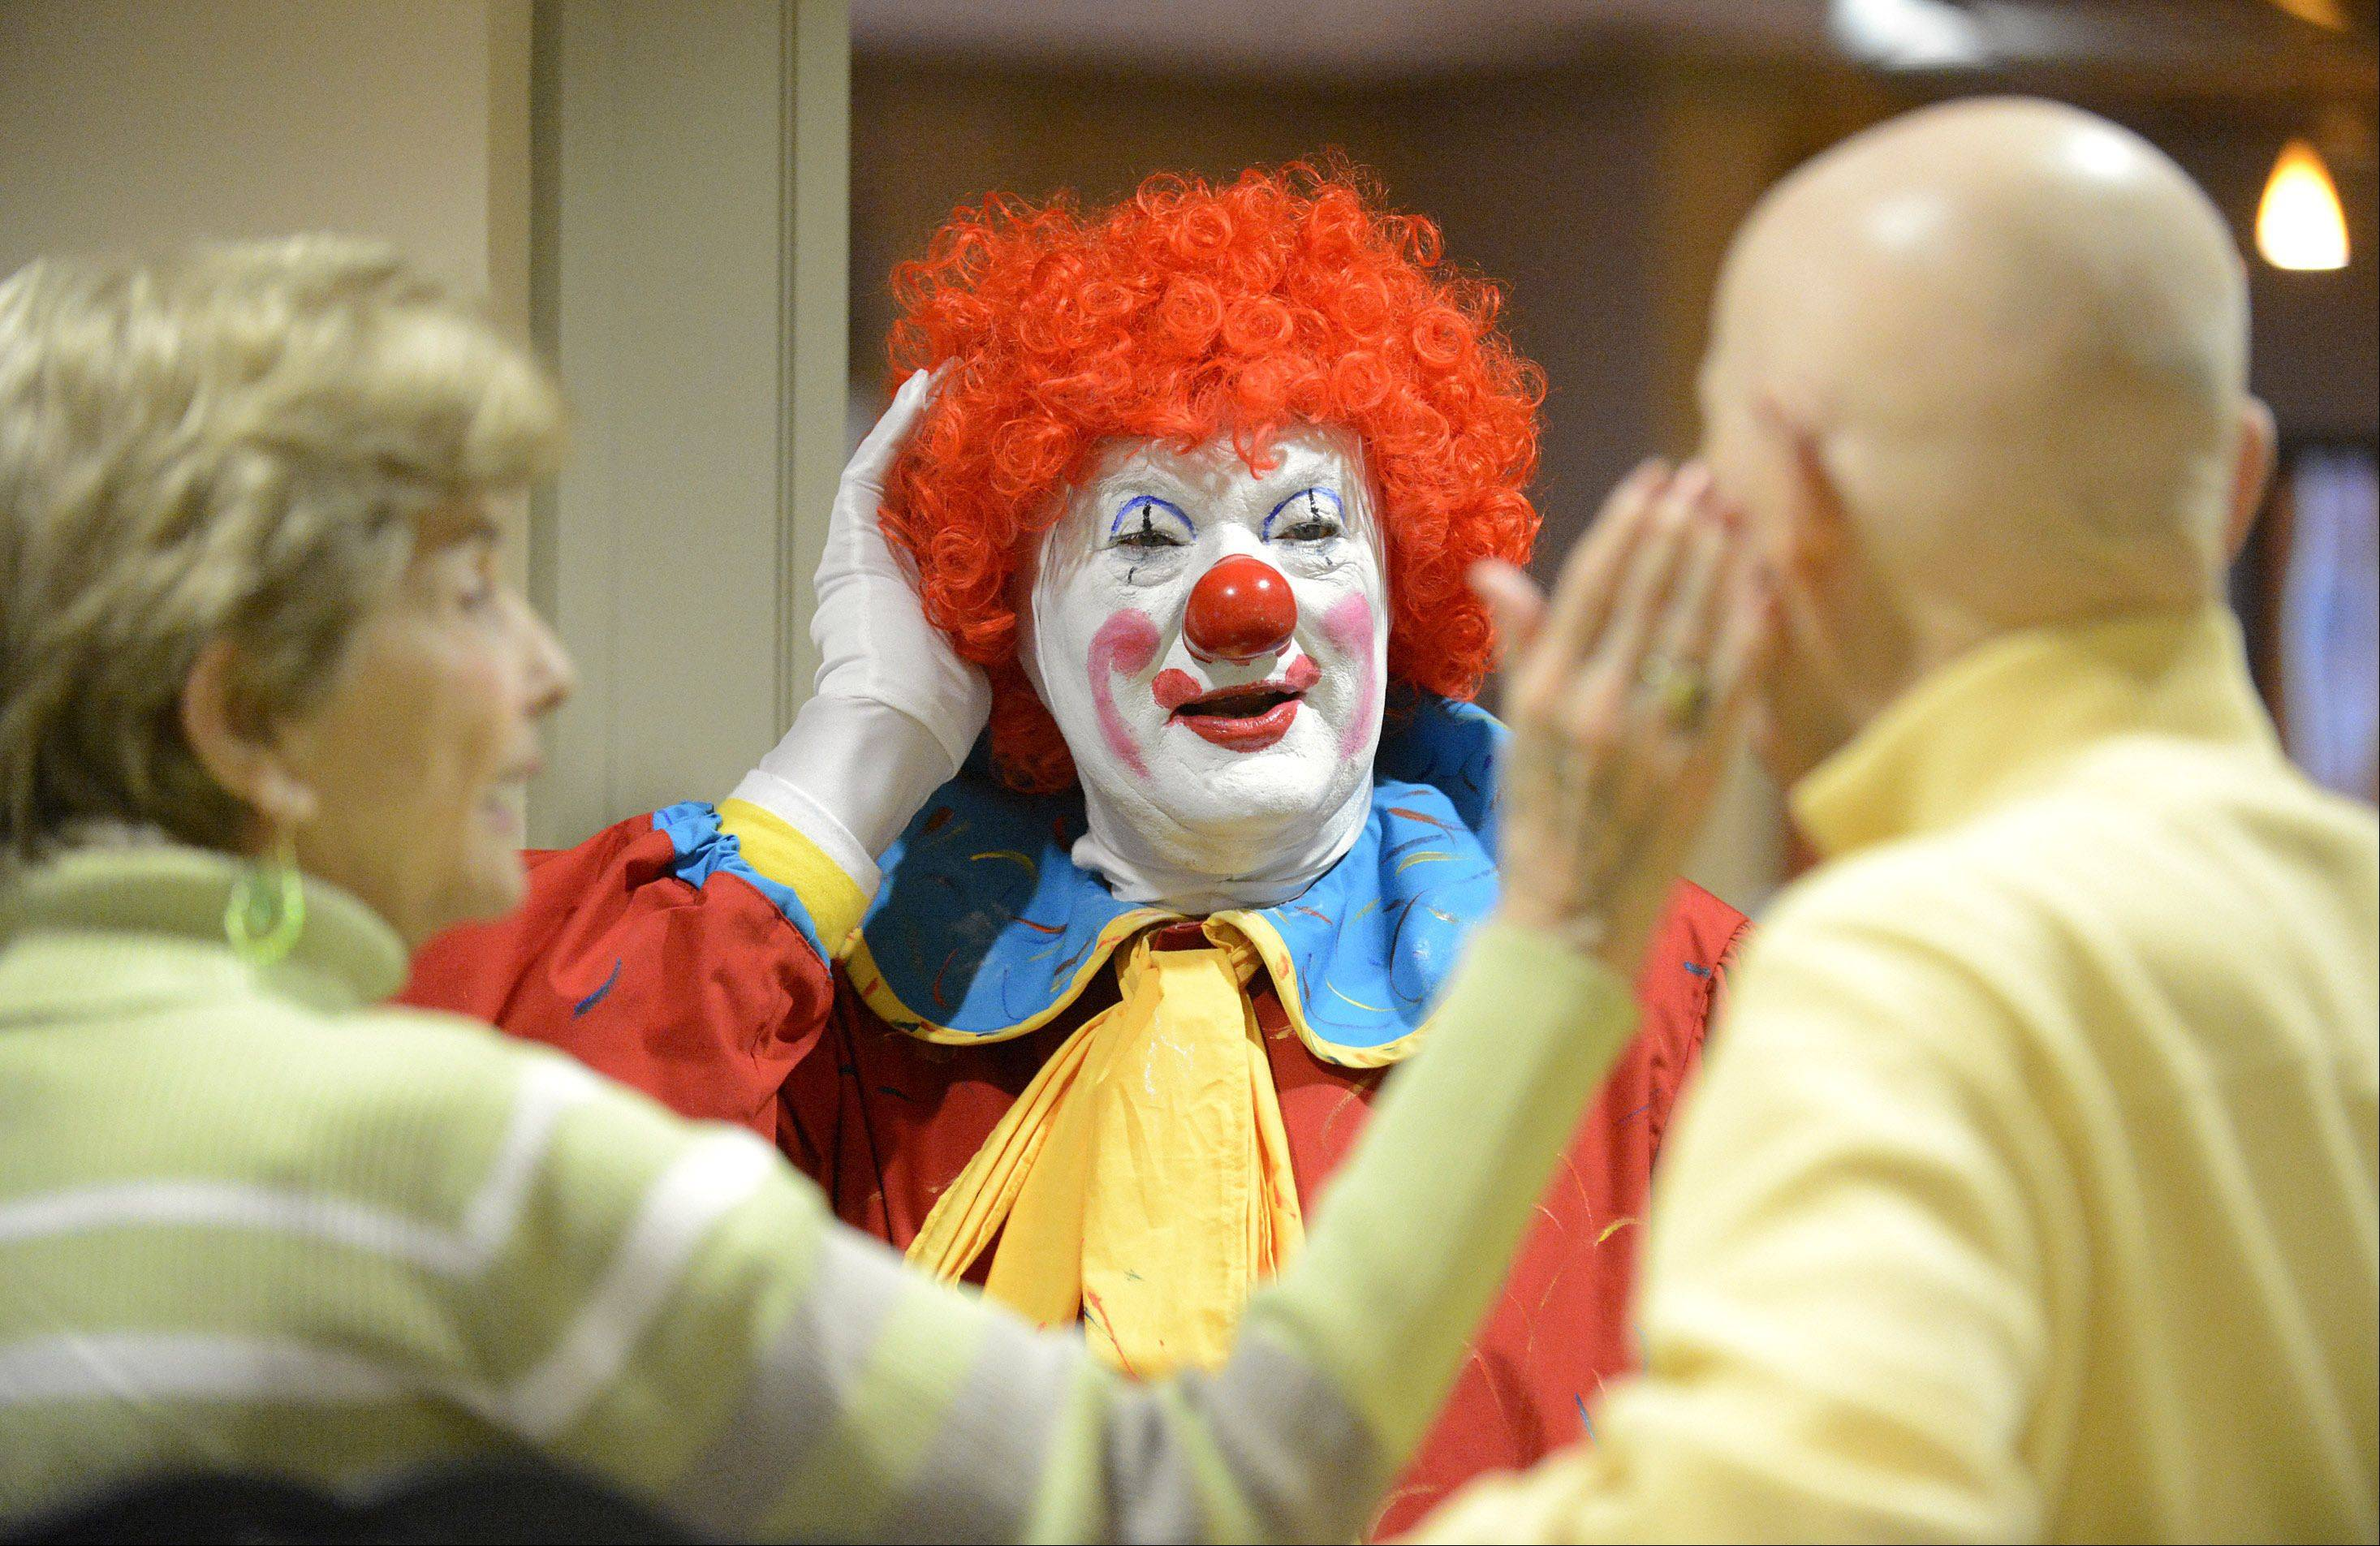 Euna Freeman jokingly compares husband Wayland's head to Polyester the clown's full head of curly, red hair. Polyester, who is Jack Kramer of Lily Lake, laughed and admitted to Euna he doesn't have much real hair under the wig. The Freemans are residents at The Holmstad retirement home in Batavia.